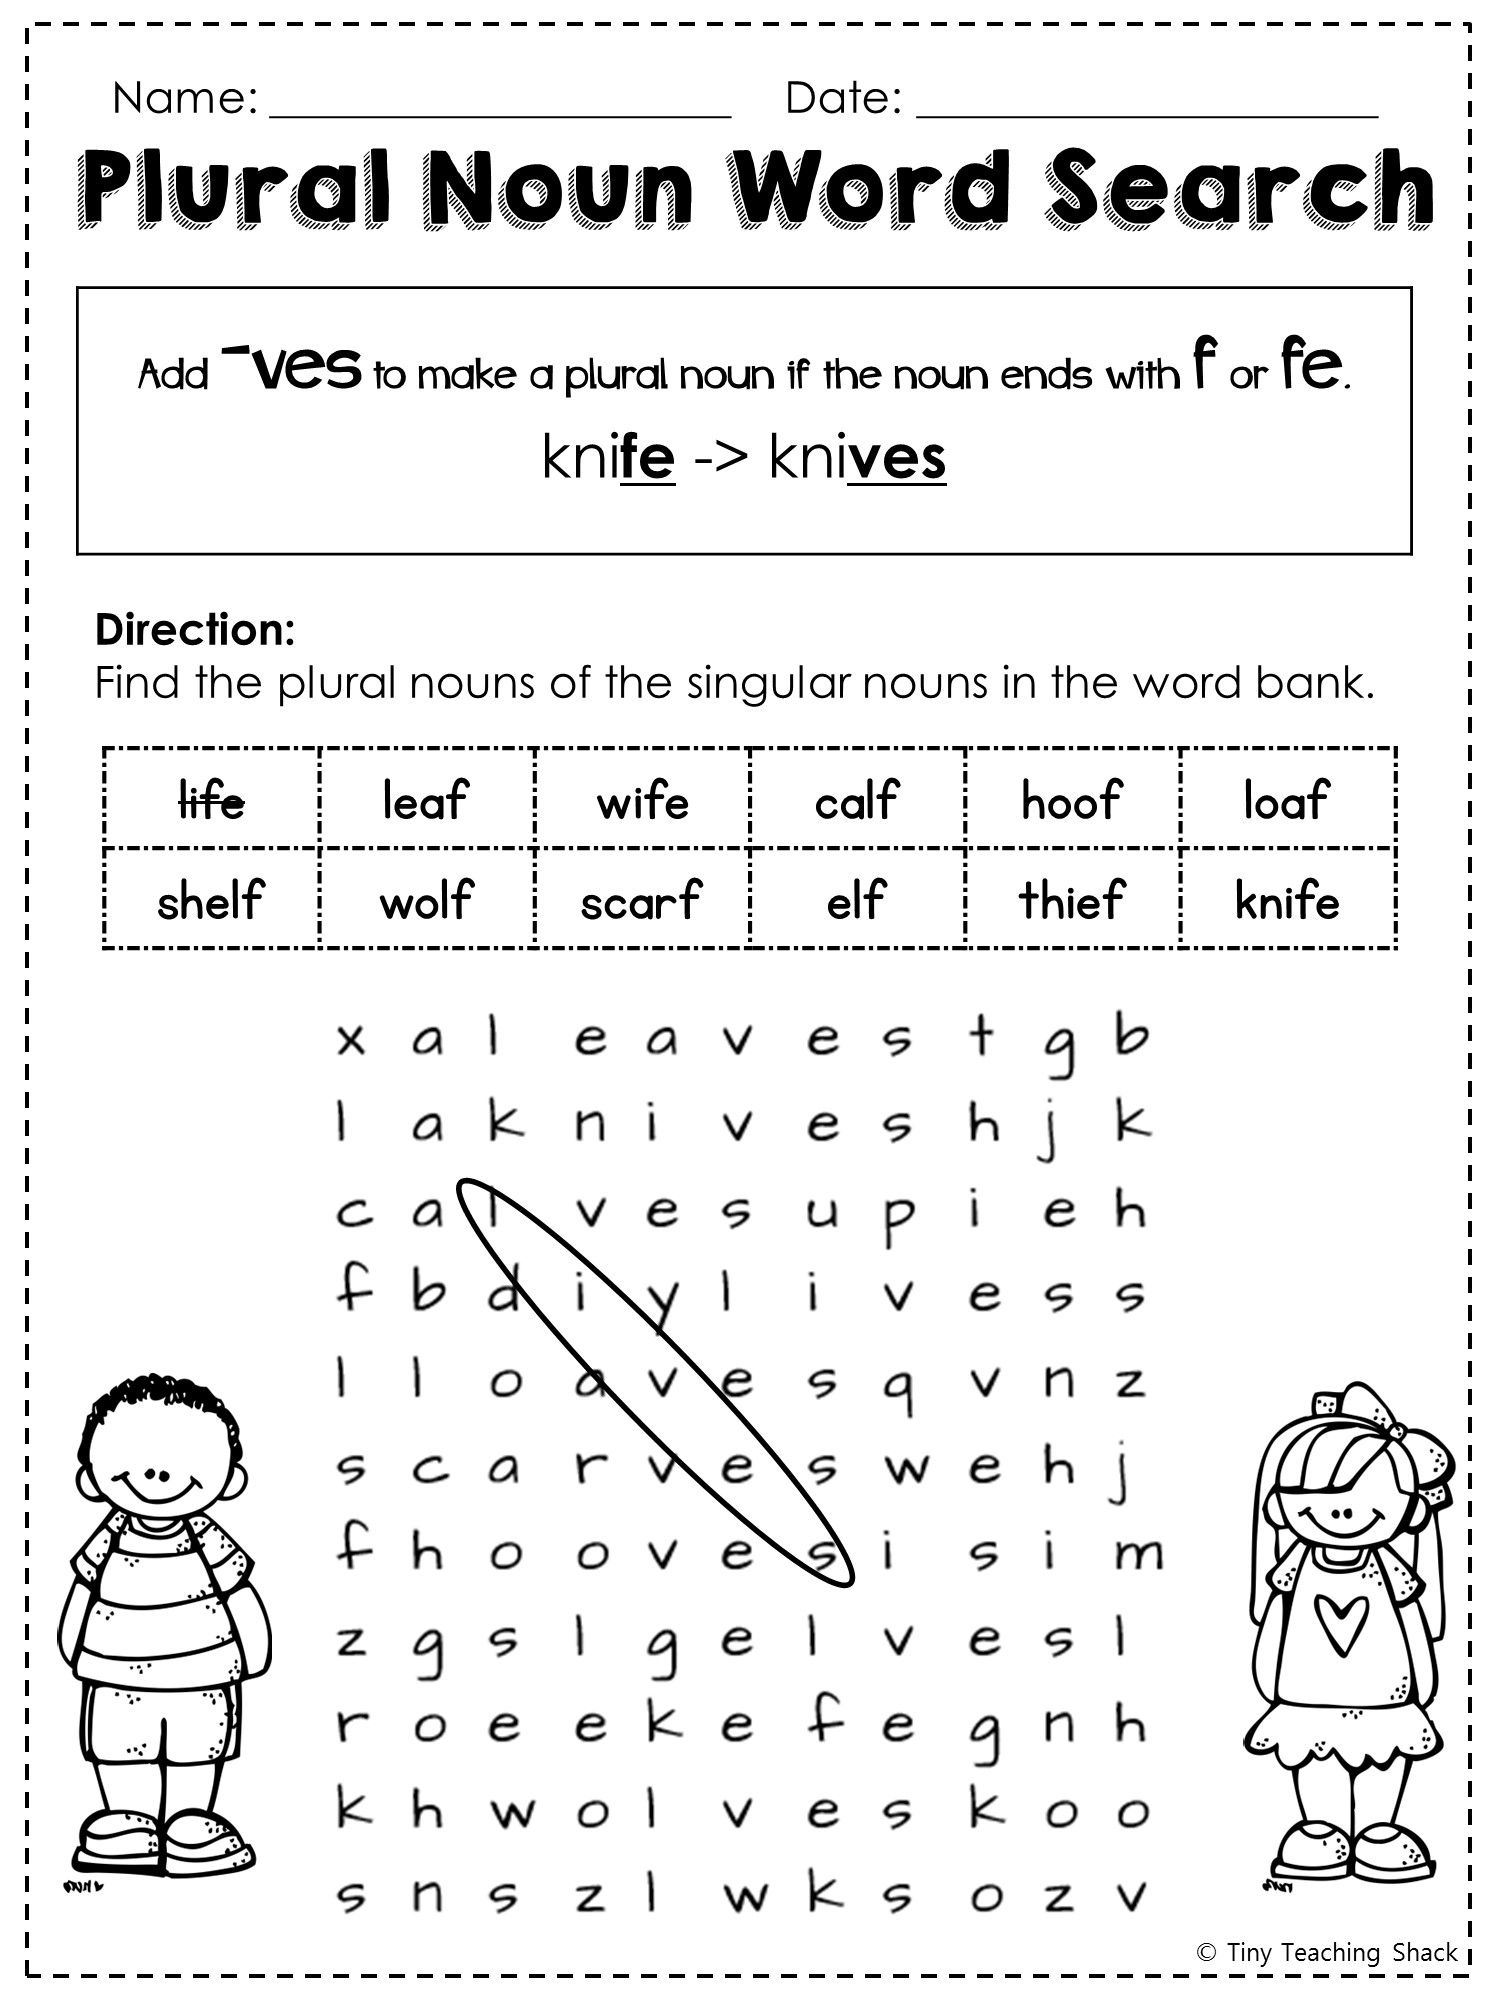 Worksheets Irregular Plural Nouns Worksheets free irregular plural noun word search h o m e w r k search